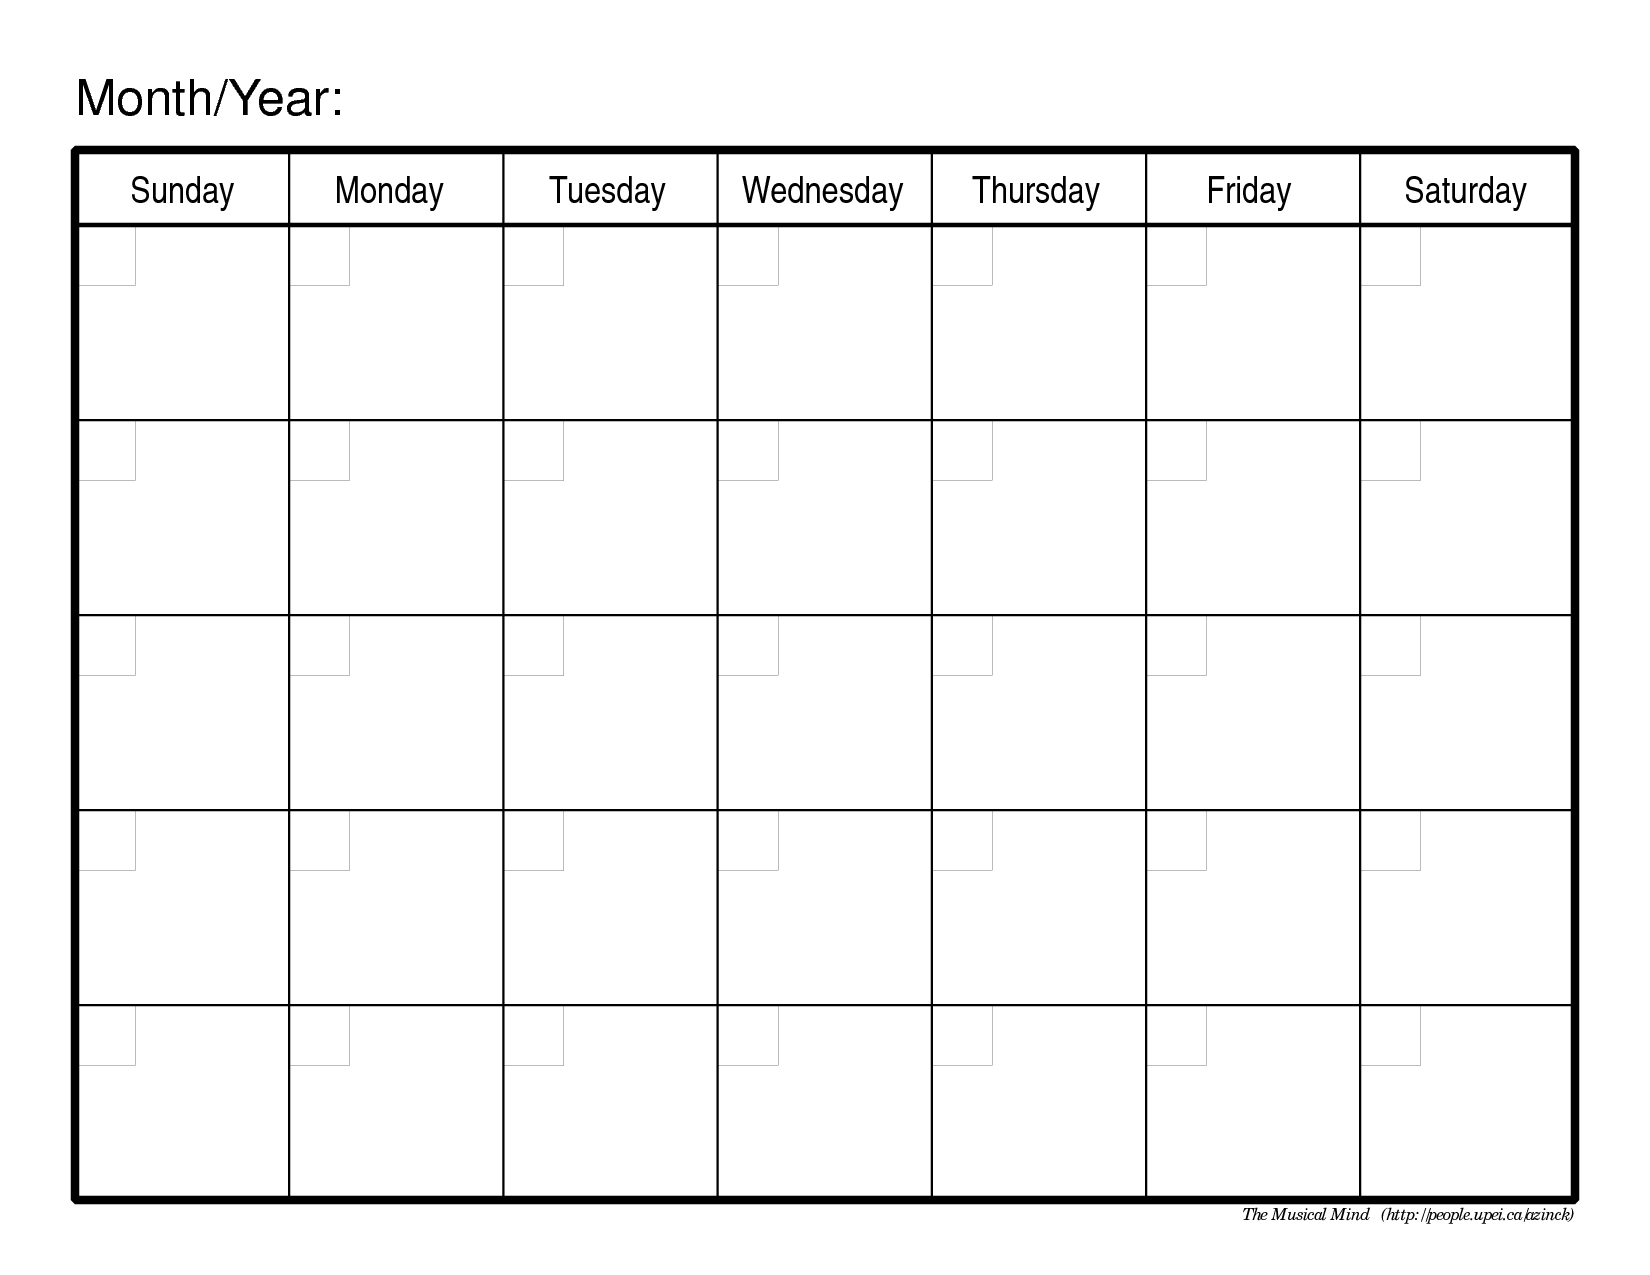 Calendar Templates Printable Free Fieldstation.co | Self Discovery within Free Blank Printable Monthly Calendar